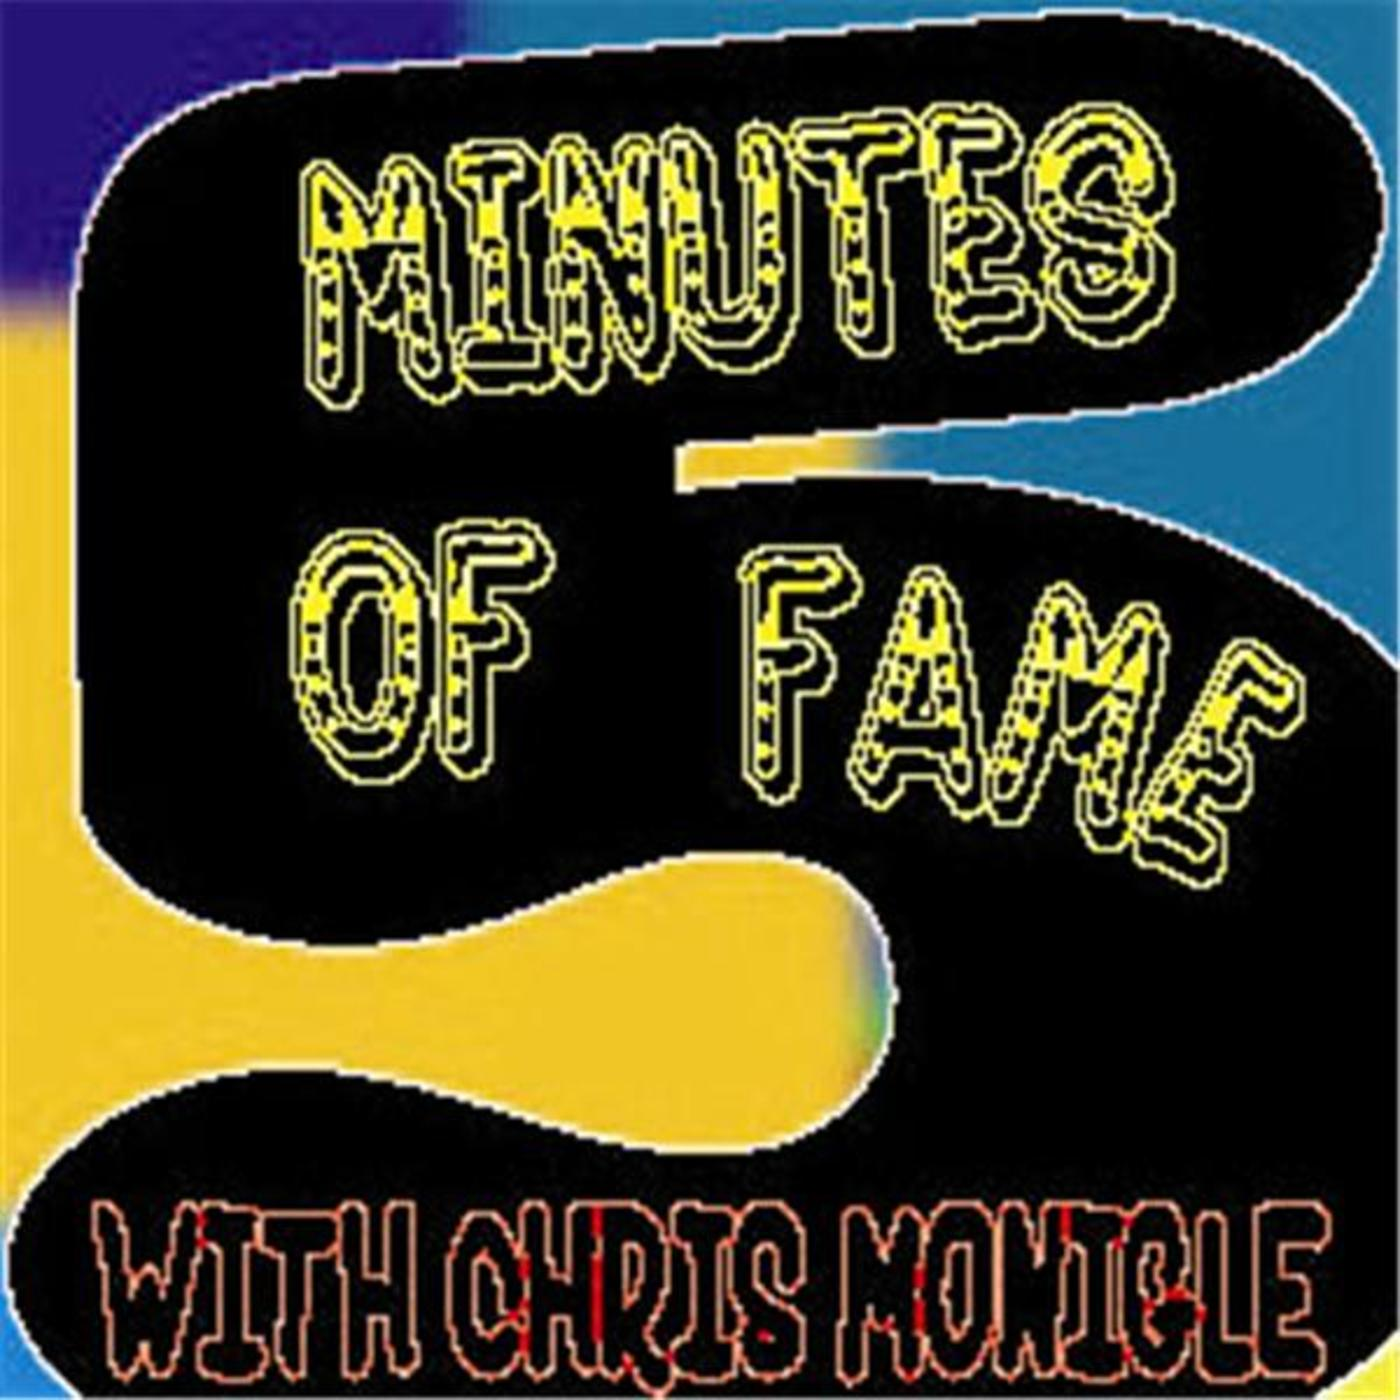 Five Minutes of Fame with Chris Monigle